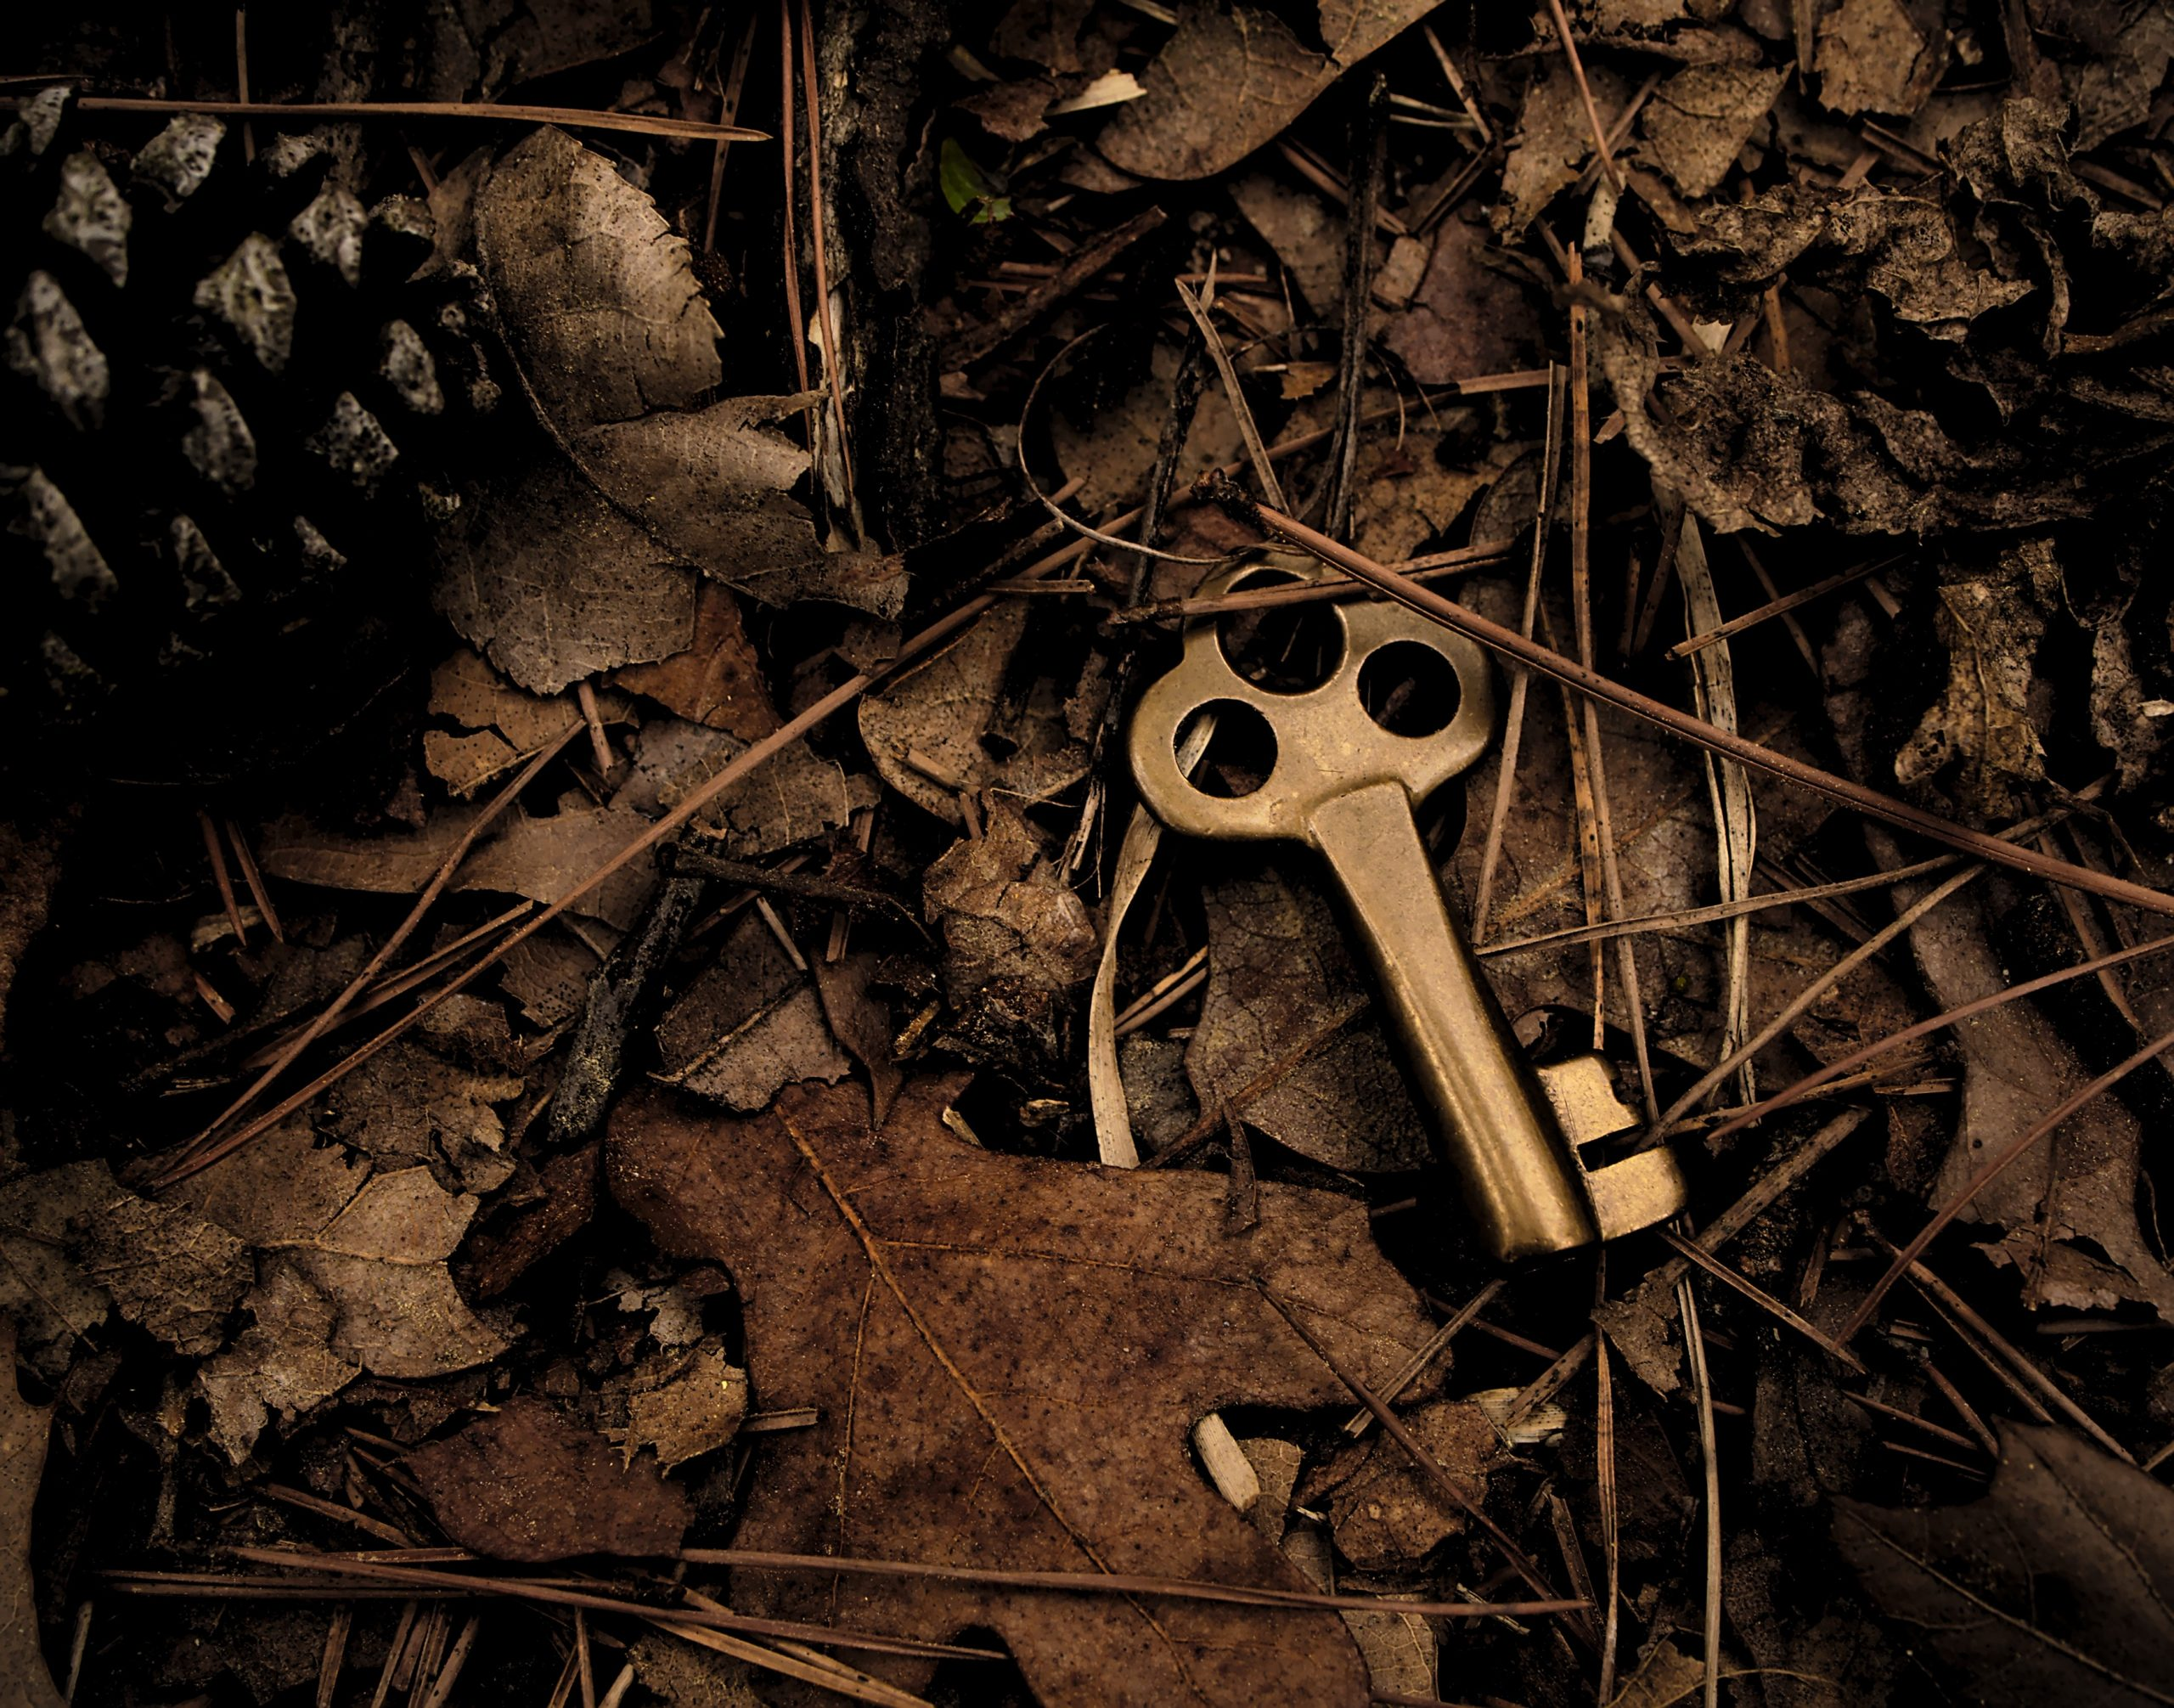 old brass key dropped in leaves in the woods